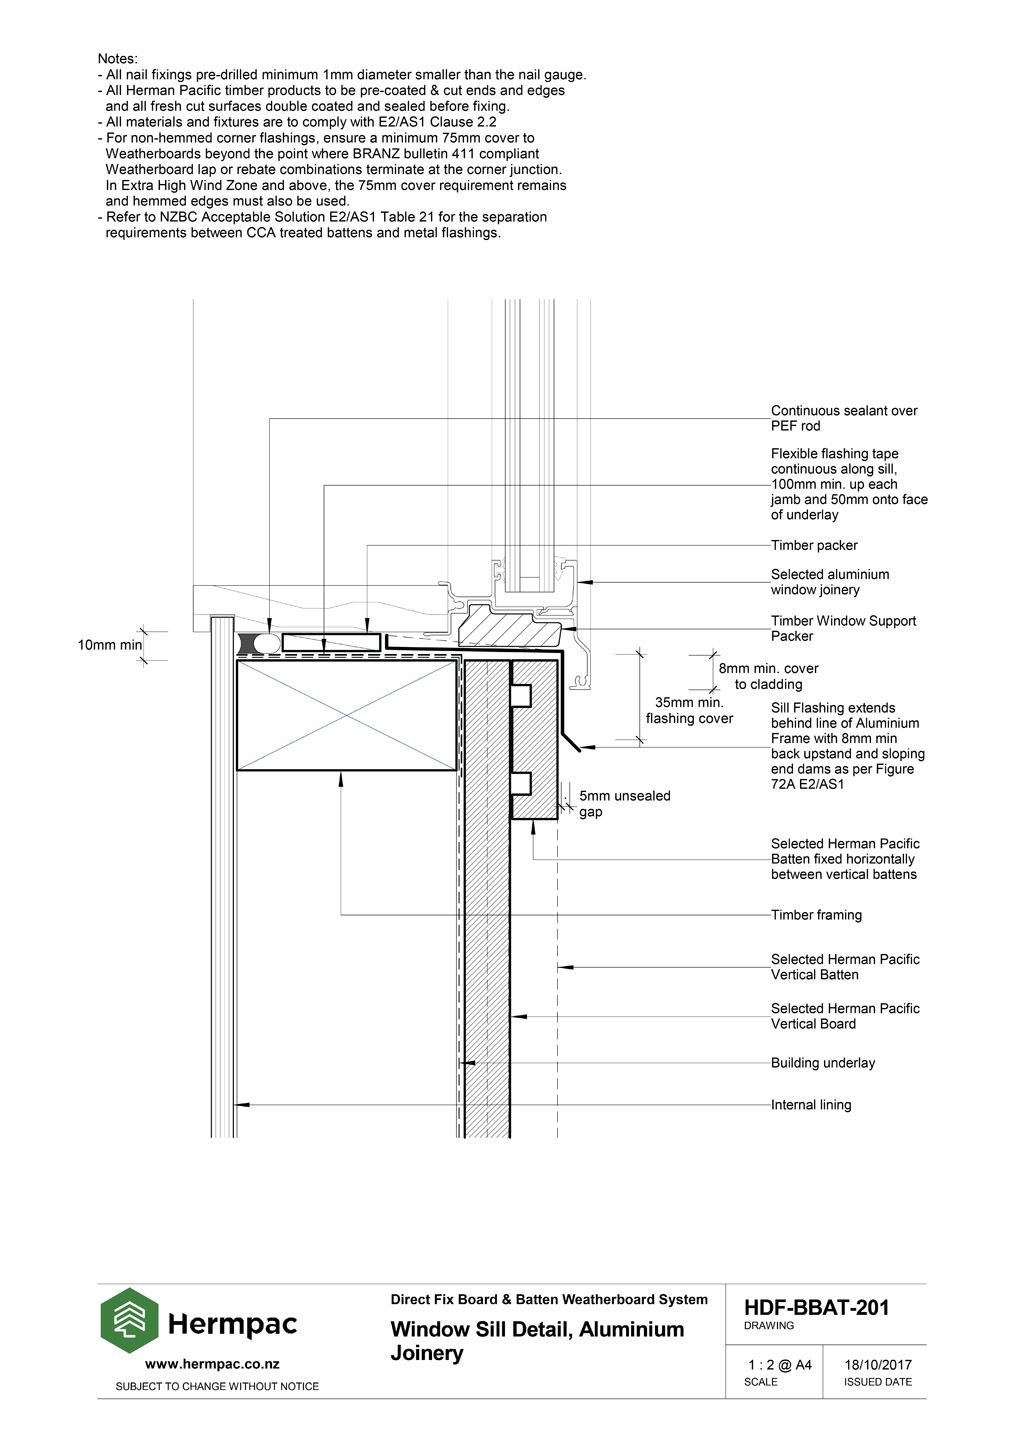 Hermpac Limited Construction Drawings